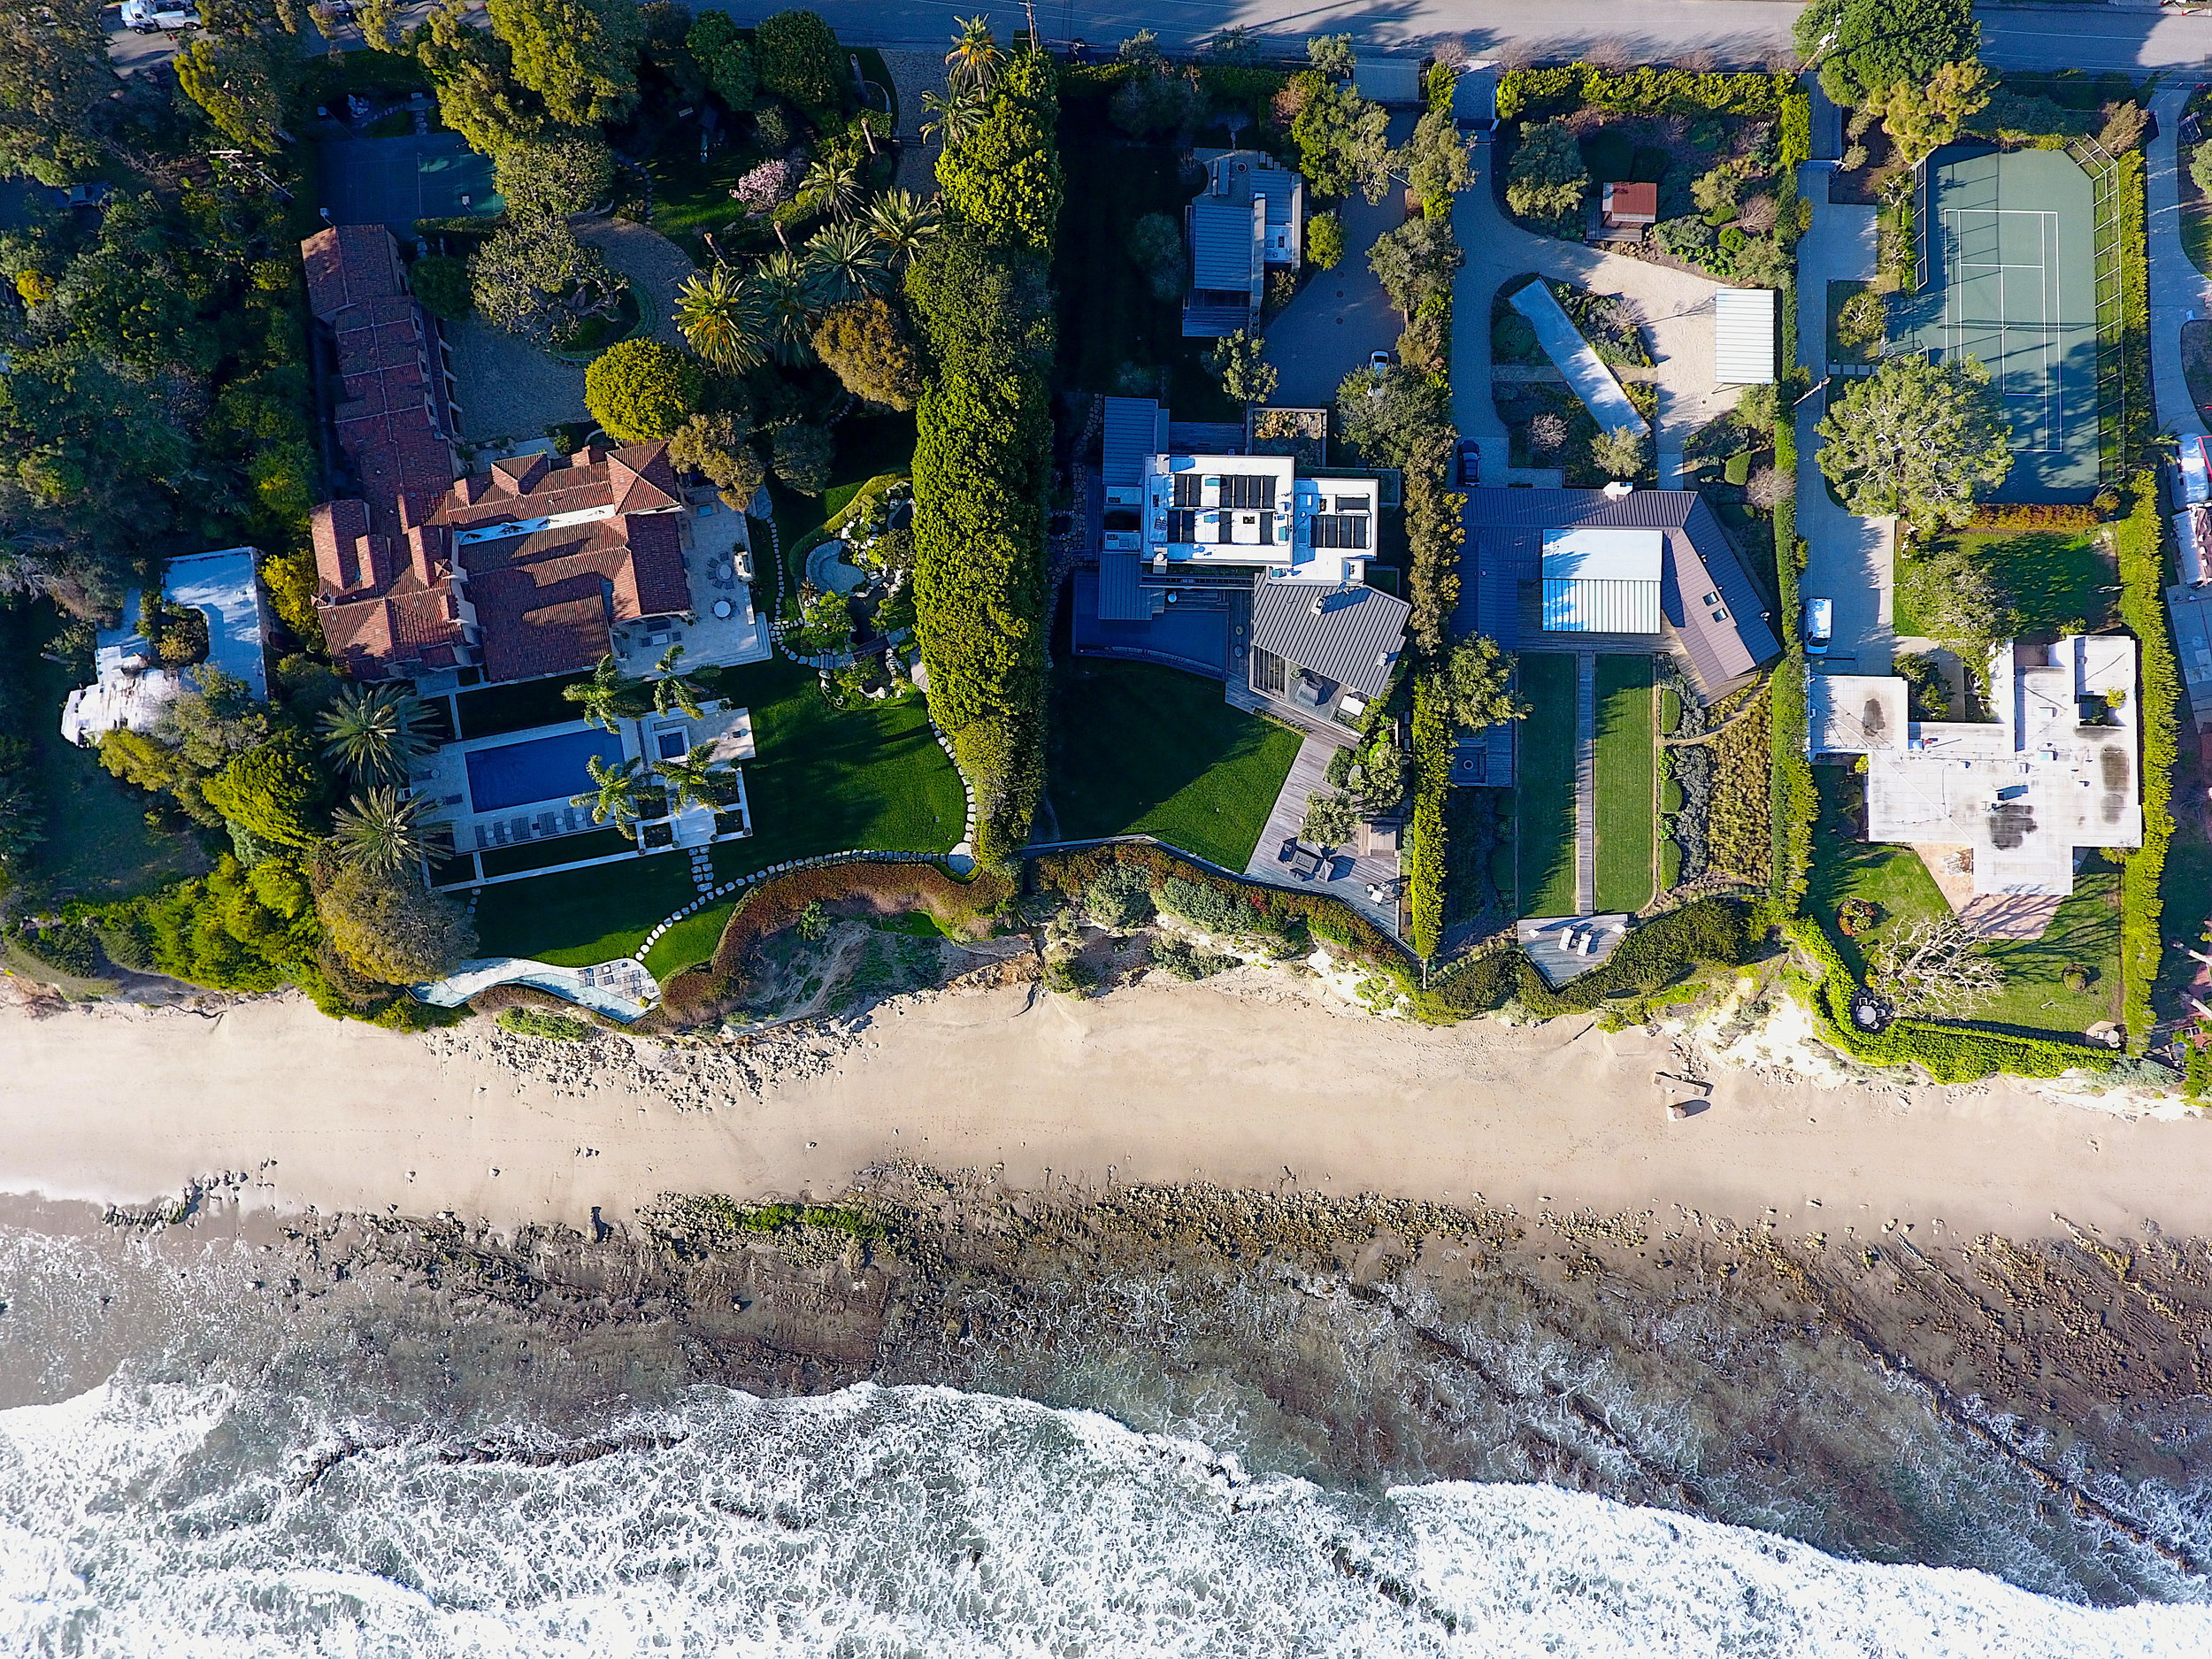 The first houses on Point Dume began sprouting up in the 1940s following WWII, and were largely modest and working-class.